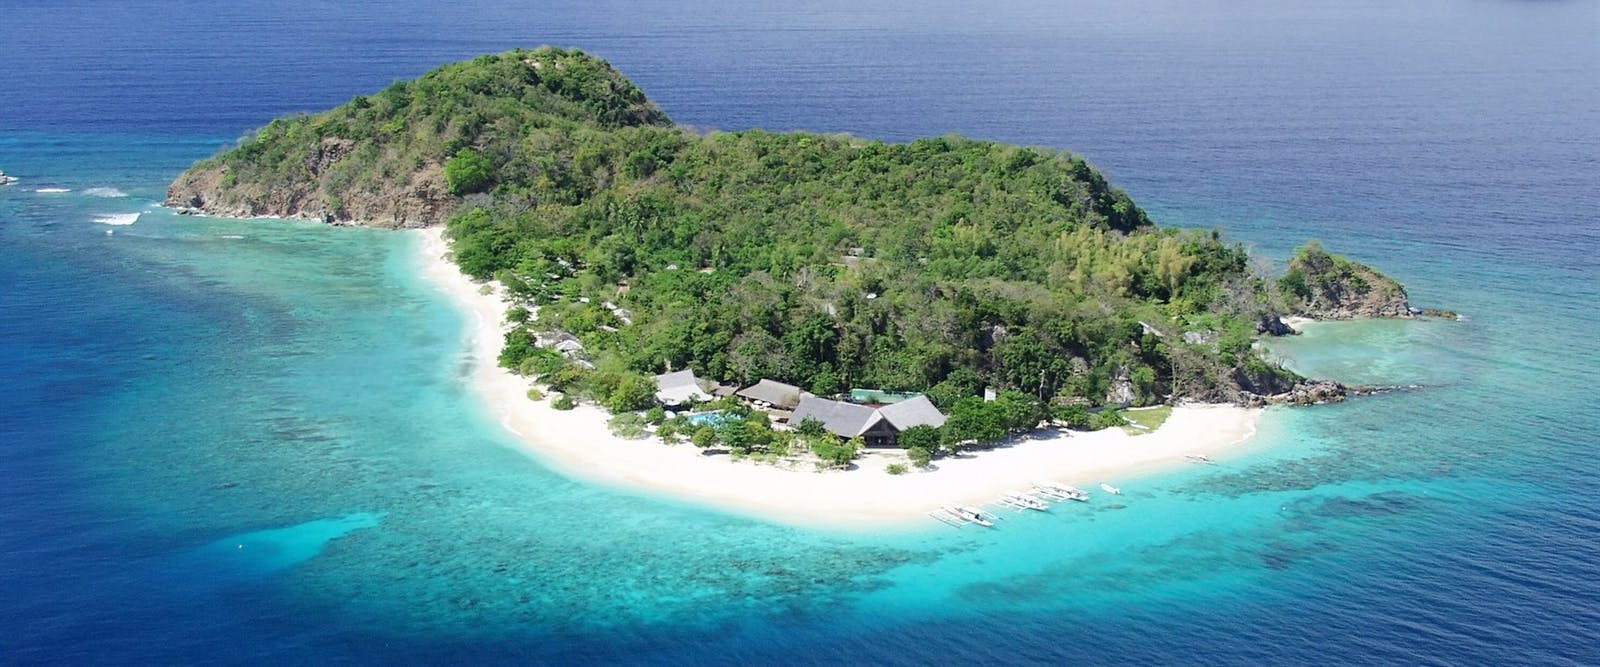 Aerial view at Club Paradise Coron, Palawan